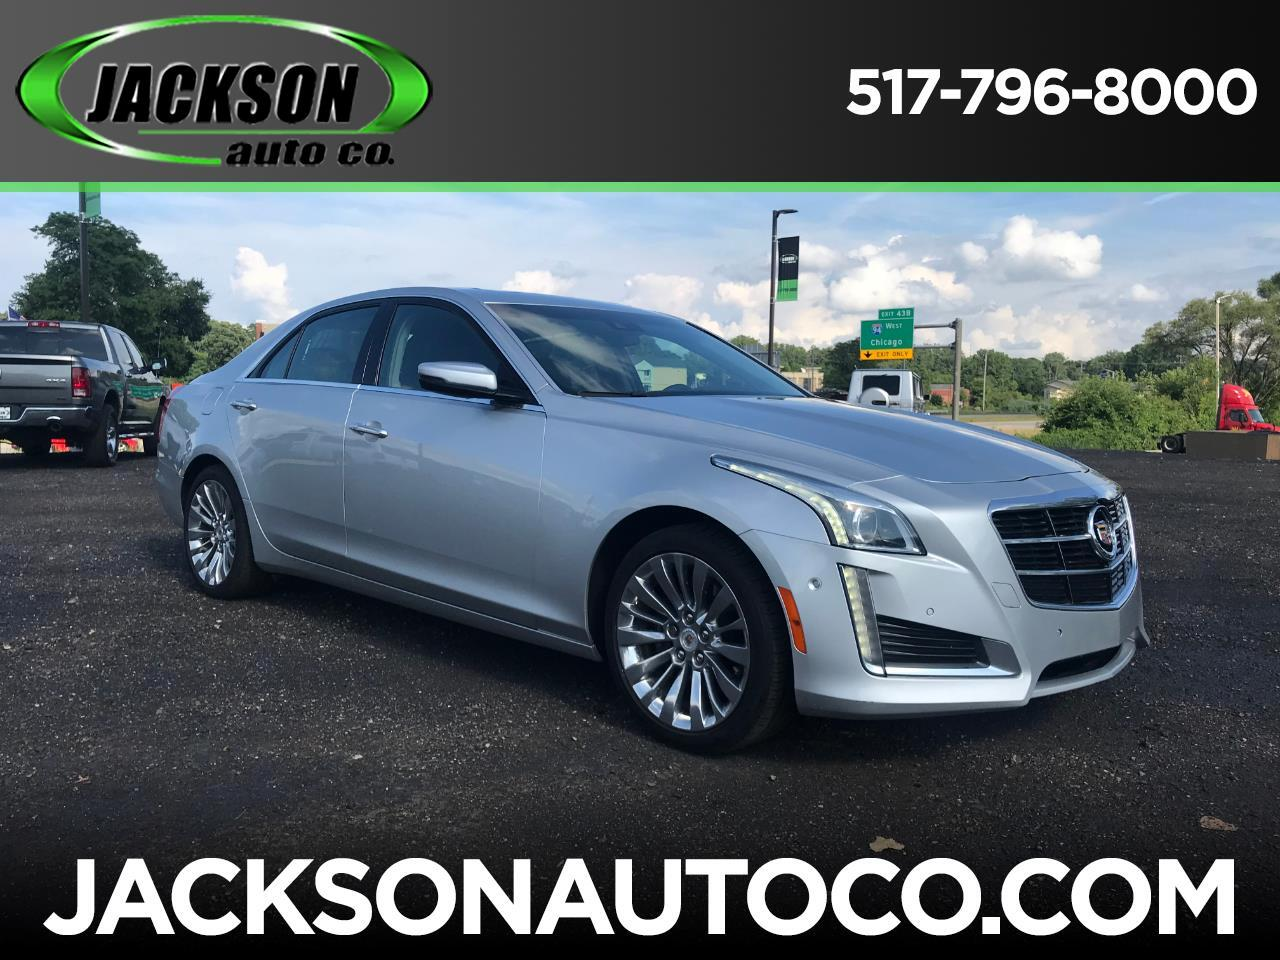 2014 Cadillac CTS Sedan 4dr Sdn 3.6L Performance AWD